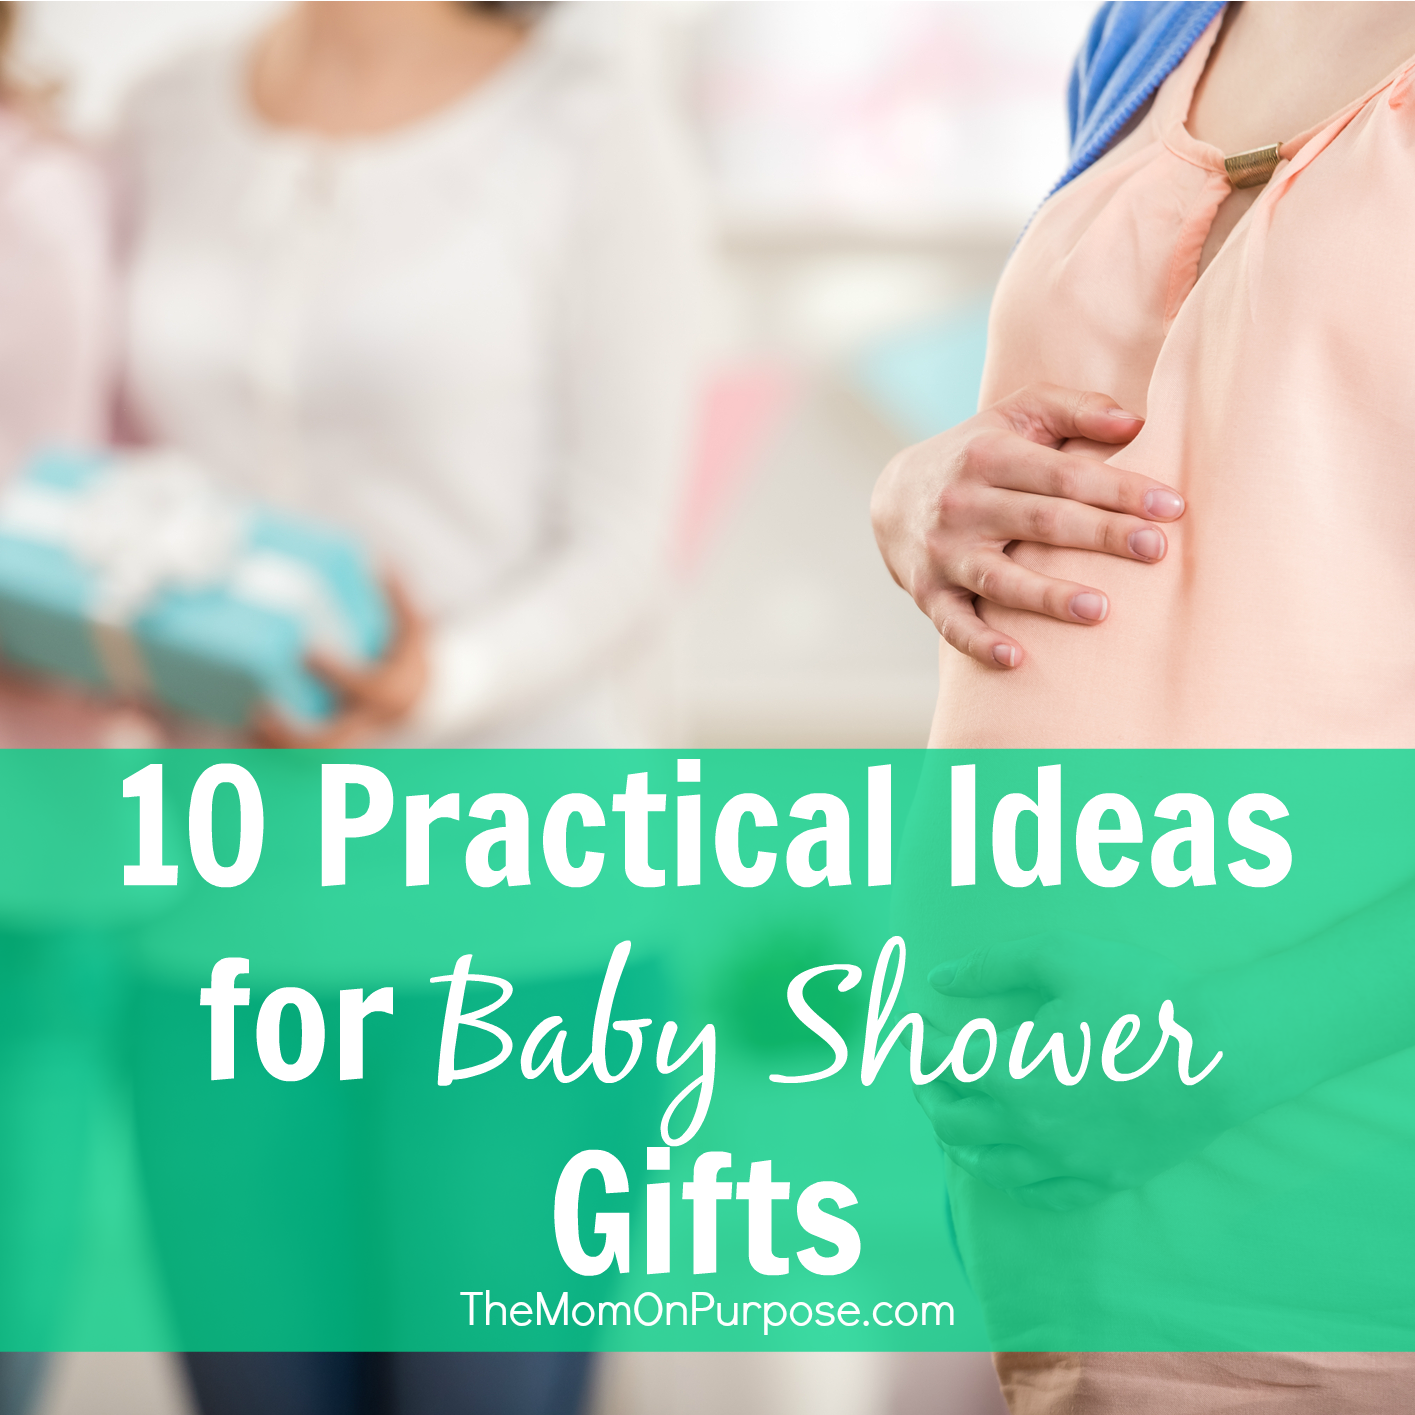 Baby Shower Gift Ideas Practical : Practical ideas for baby shower gifts the simply